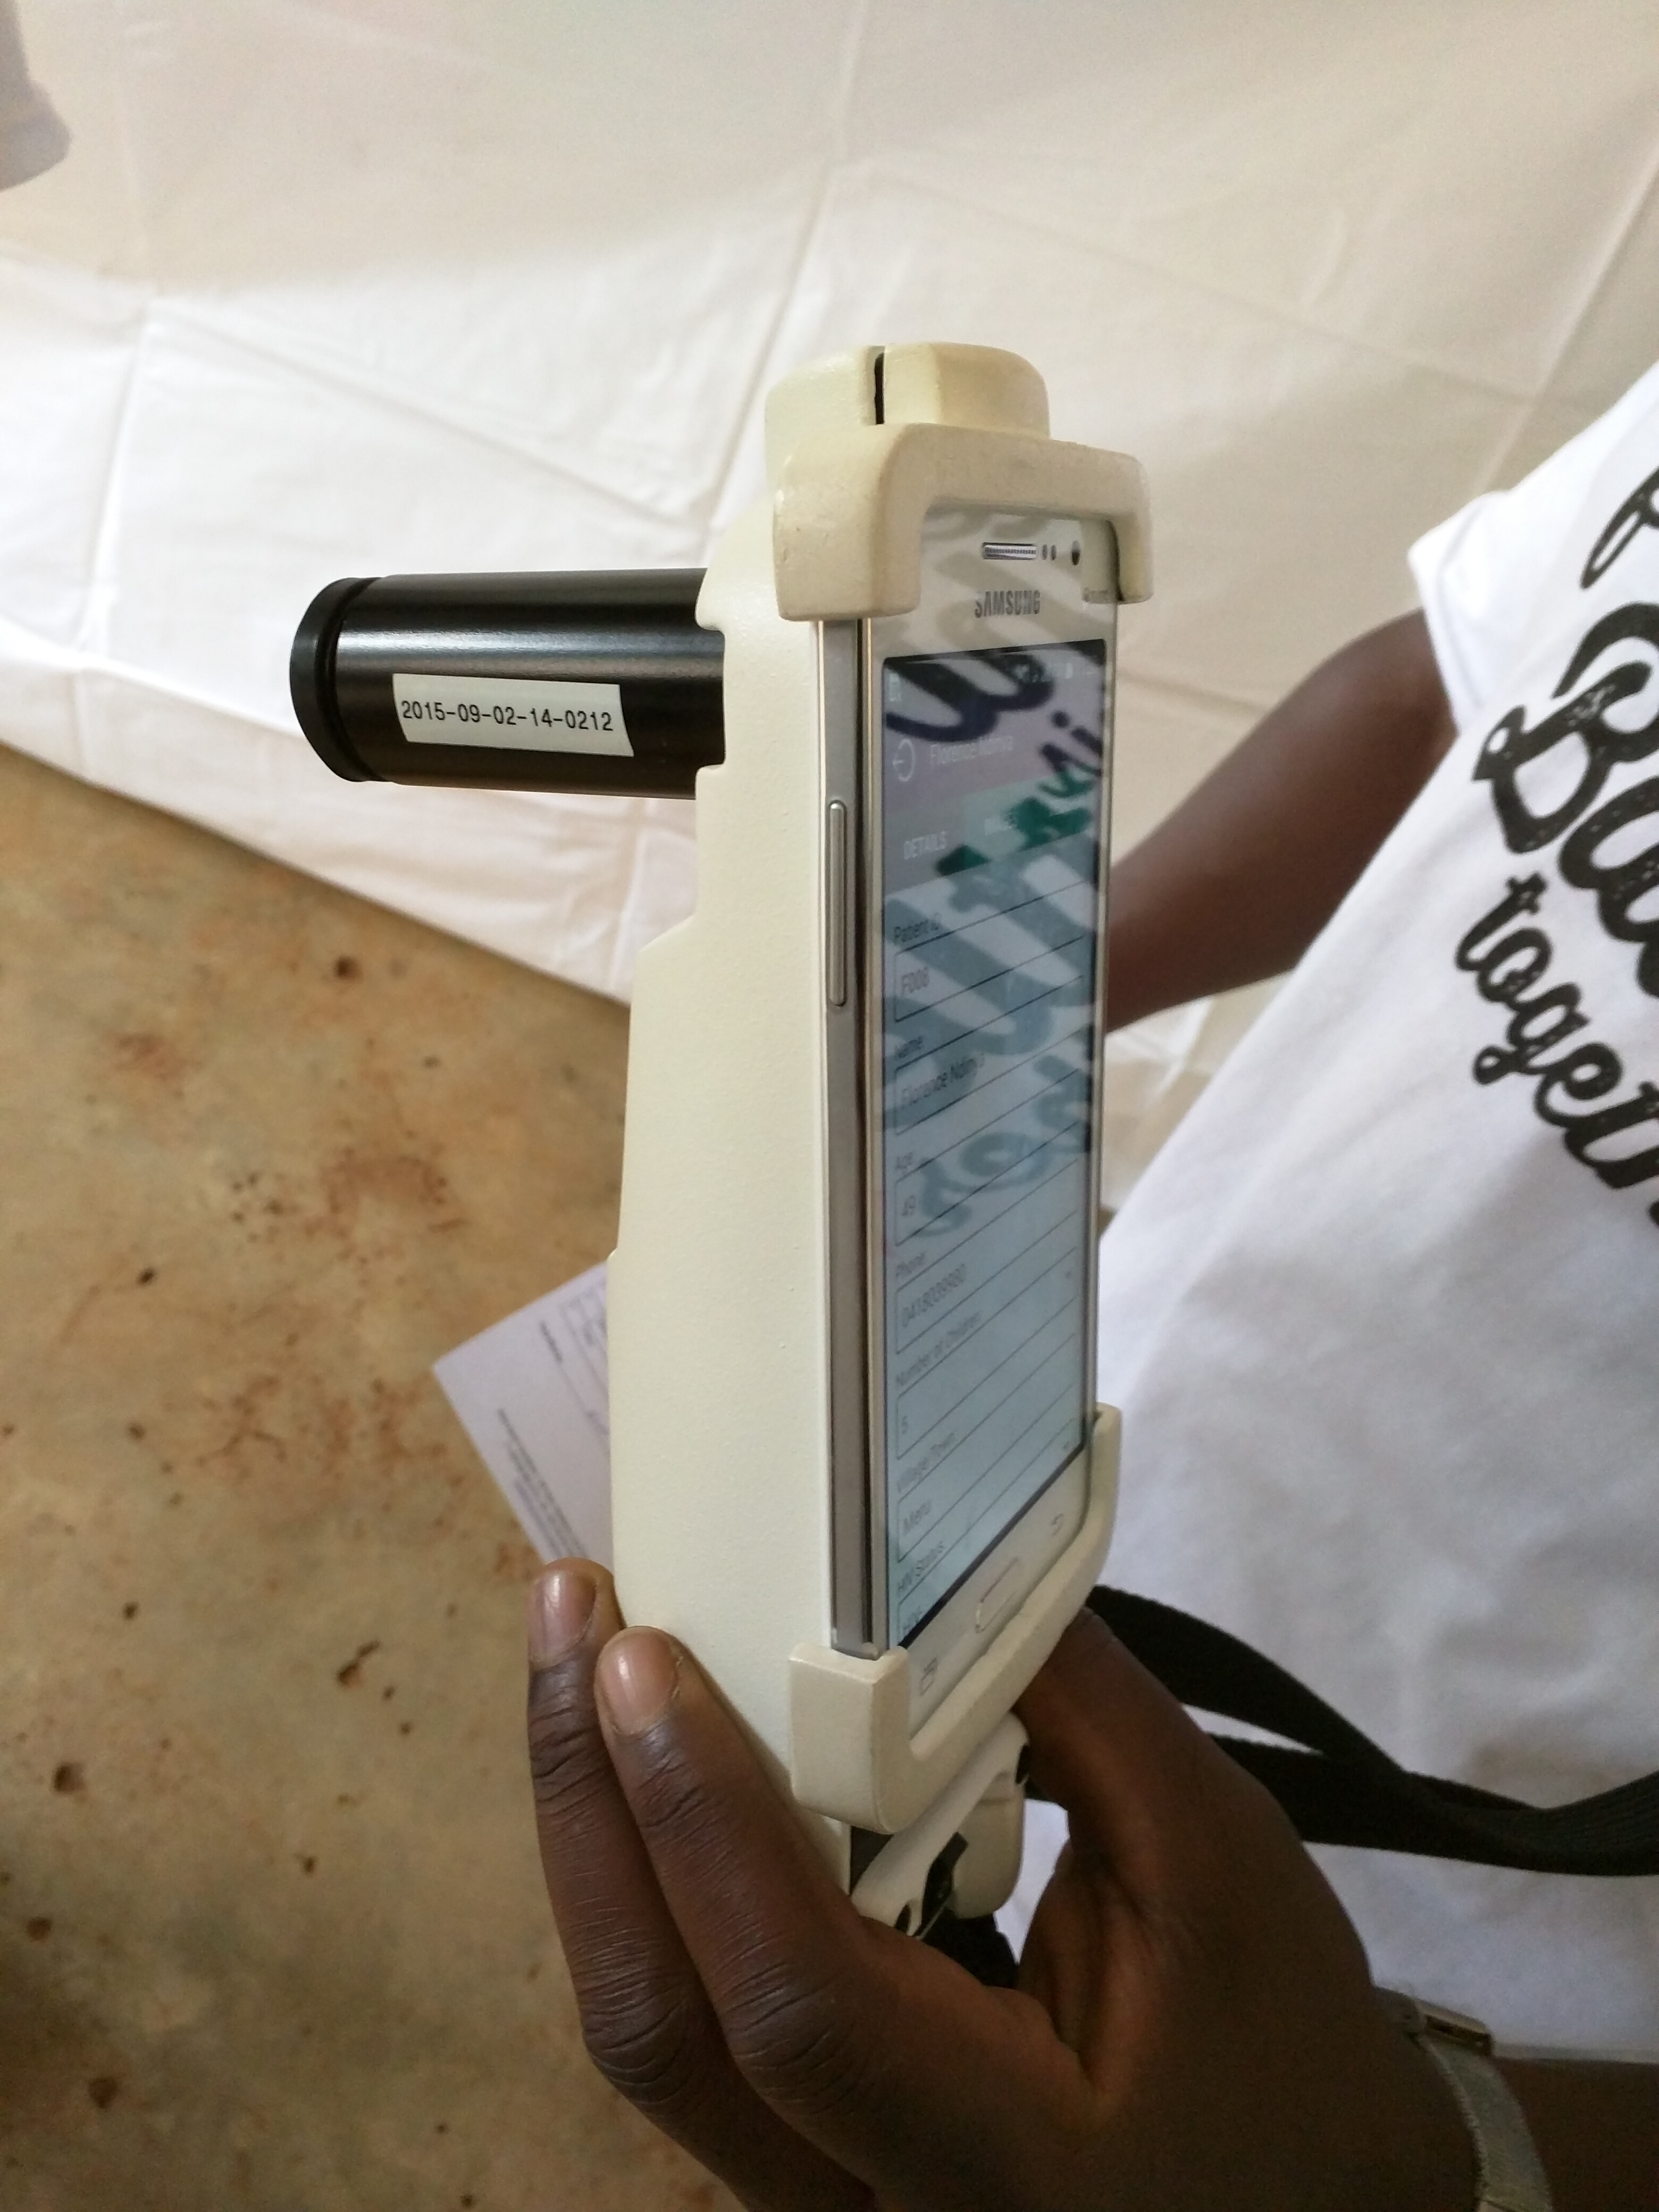 Mobile ODT (Offline Data Transfer) Device is a smartphone-enabled medical device that is used to detect Cervical Cancer.